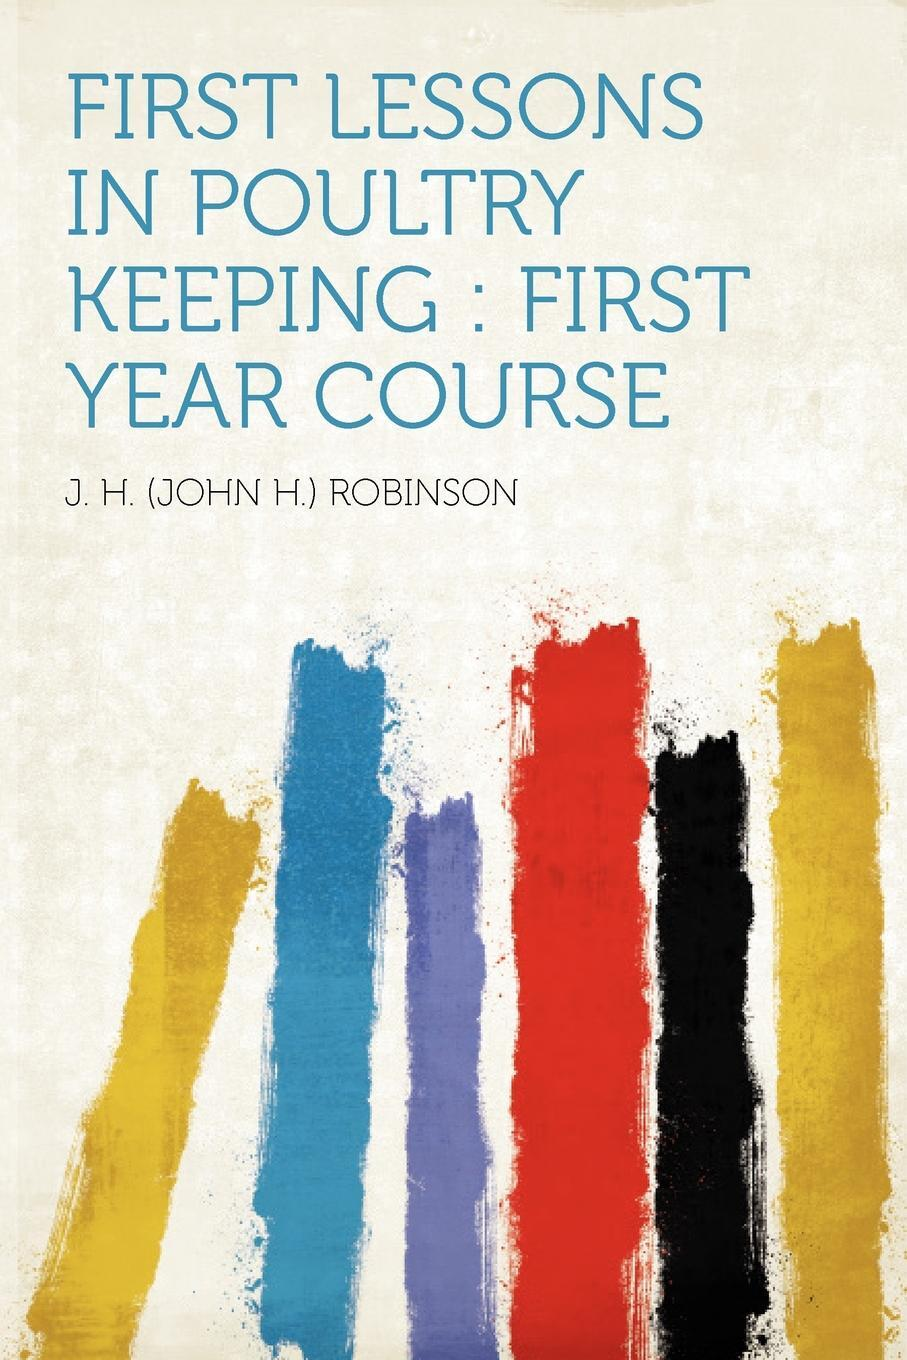 First Lessons in Poultry Keeping. First Year Course. J. H. (John H.) Robinson